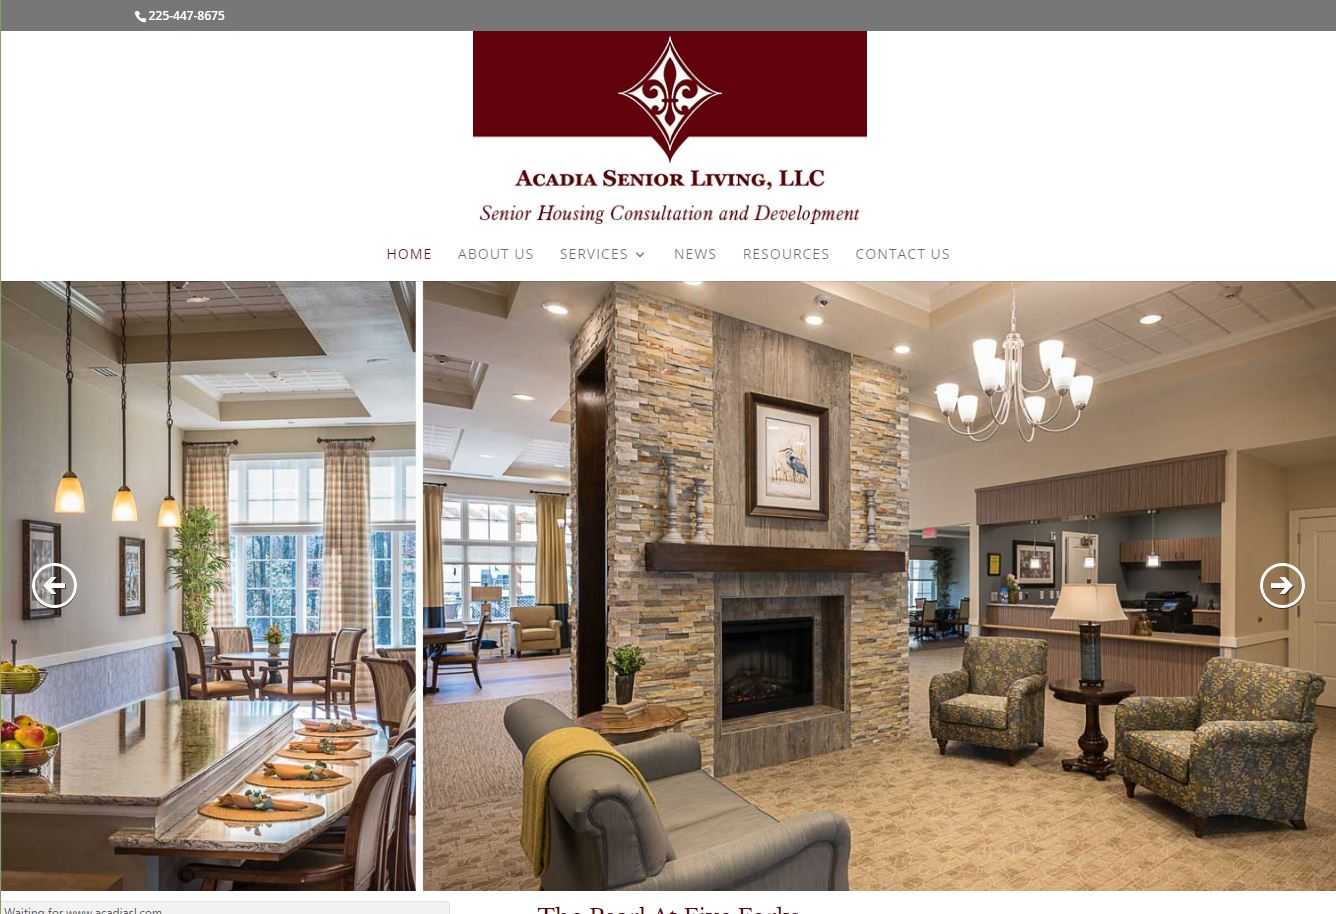 Acadia Senior Living, LLC